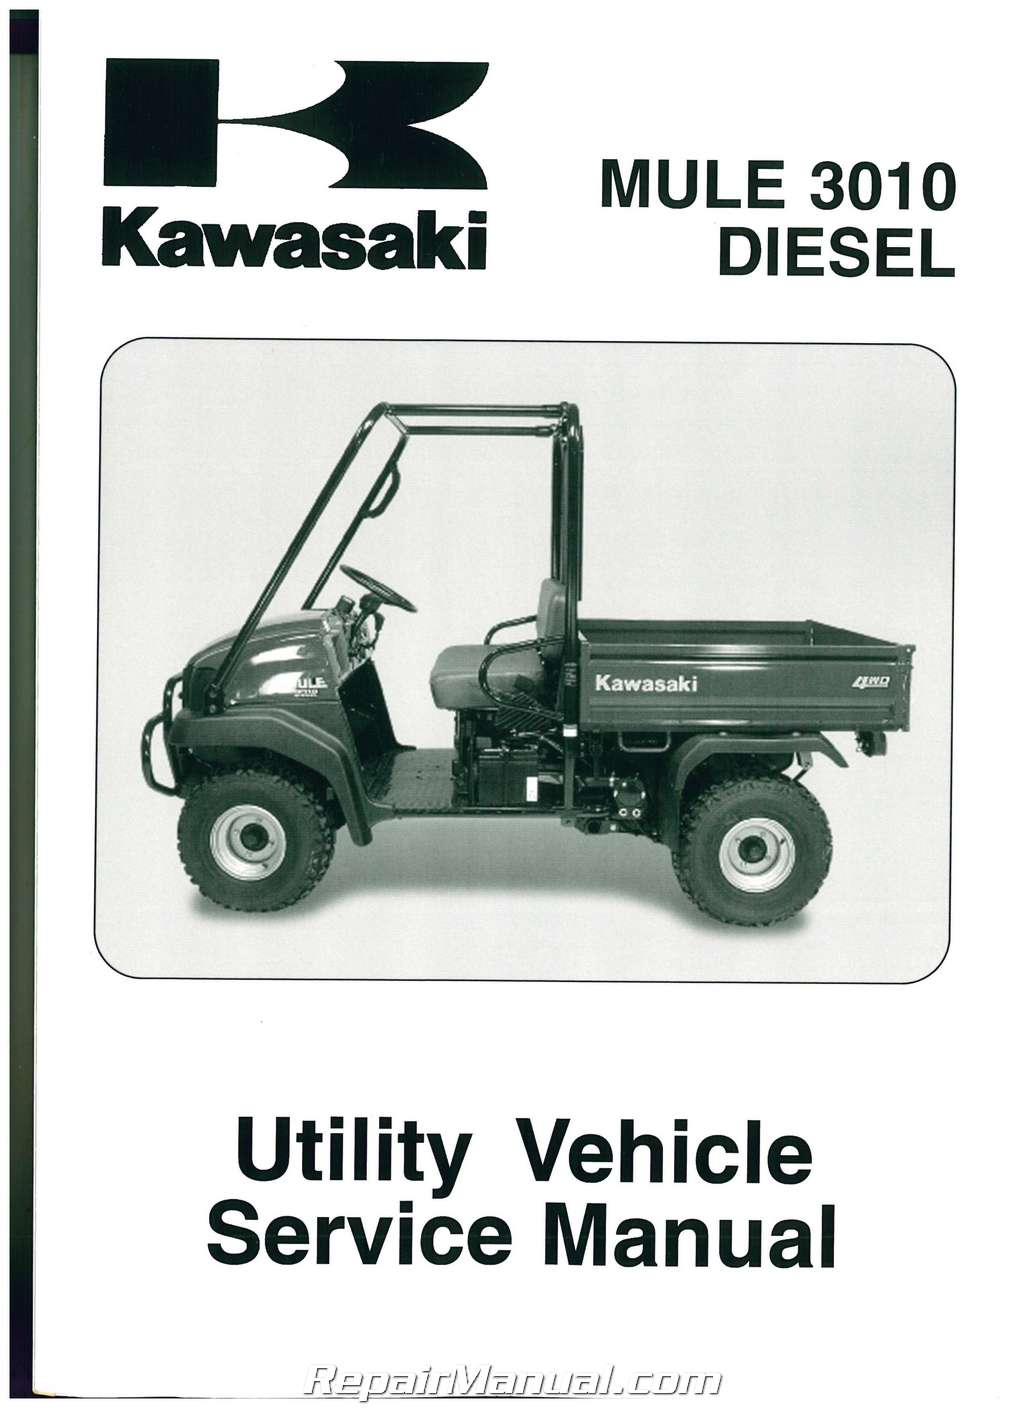 Kawasaki Kaf950 Mulesel Side By Side